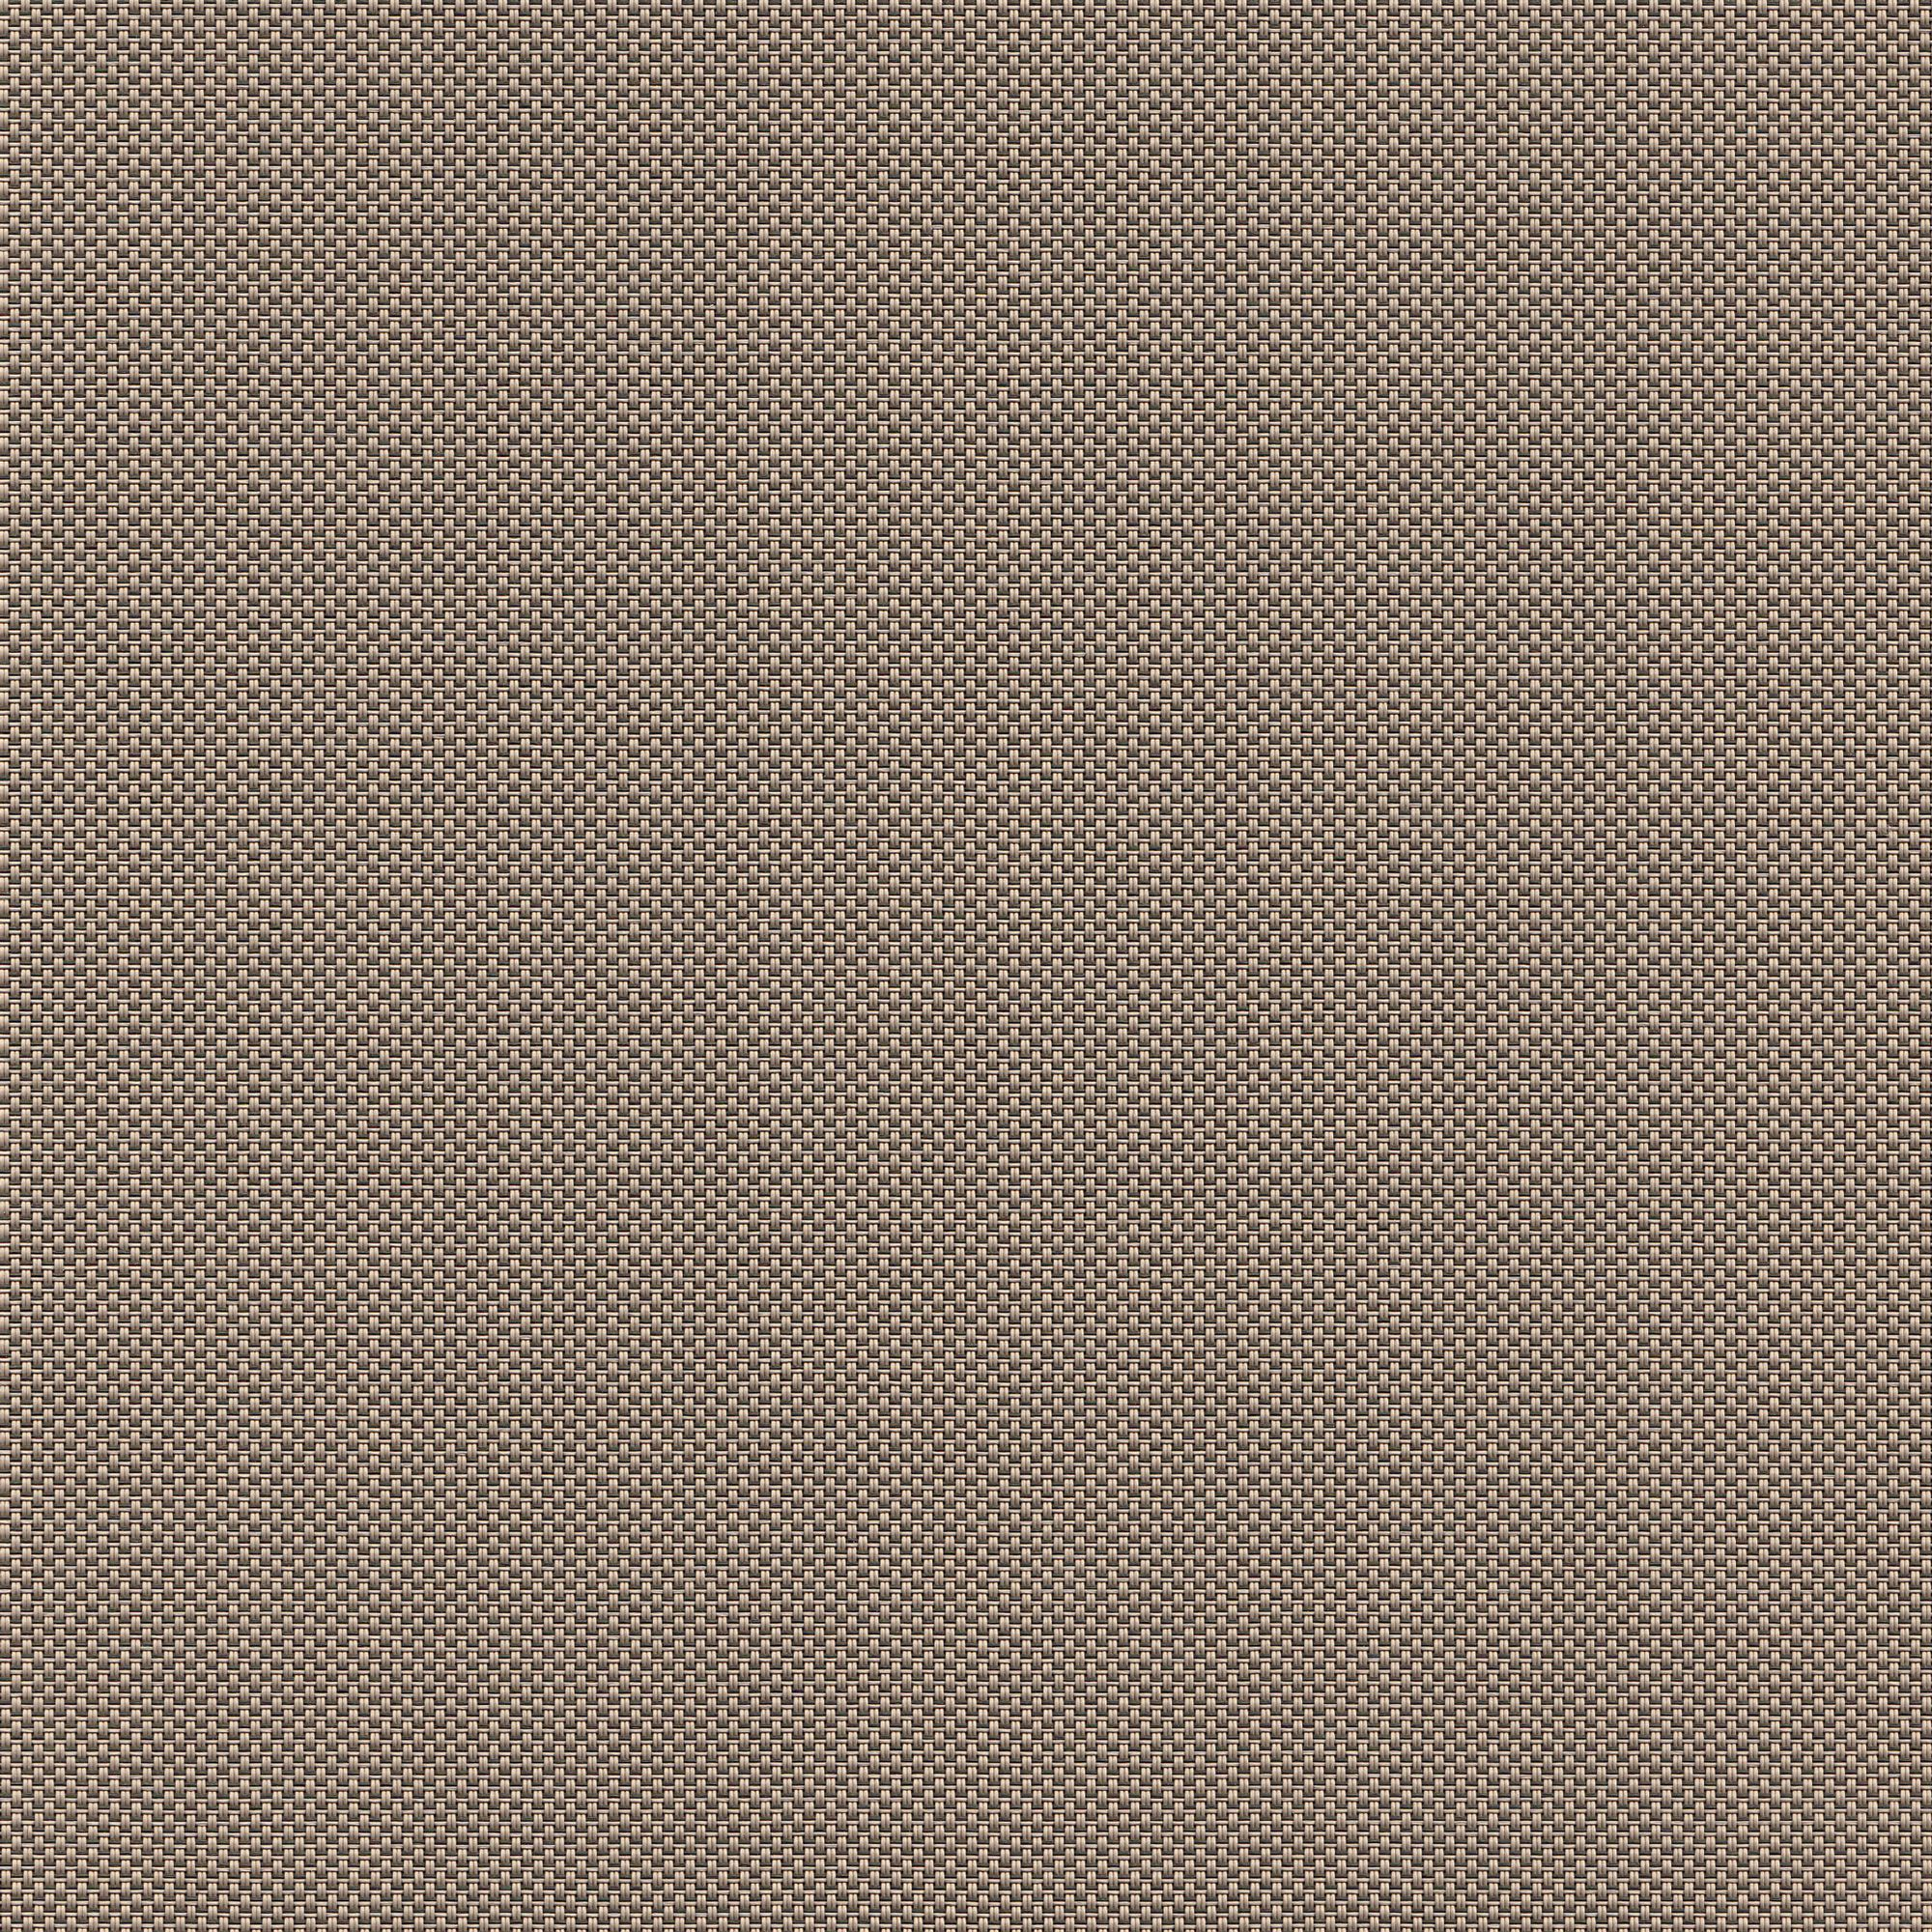 Nordic Screen BW Sable-Shale